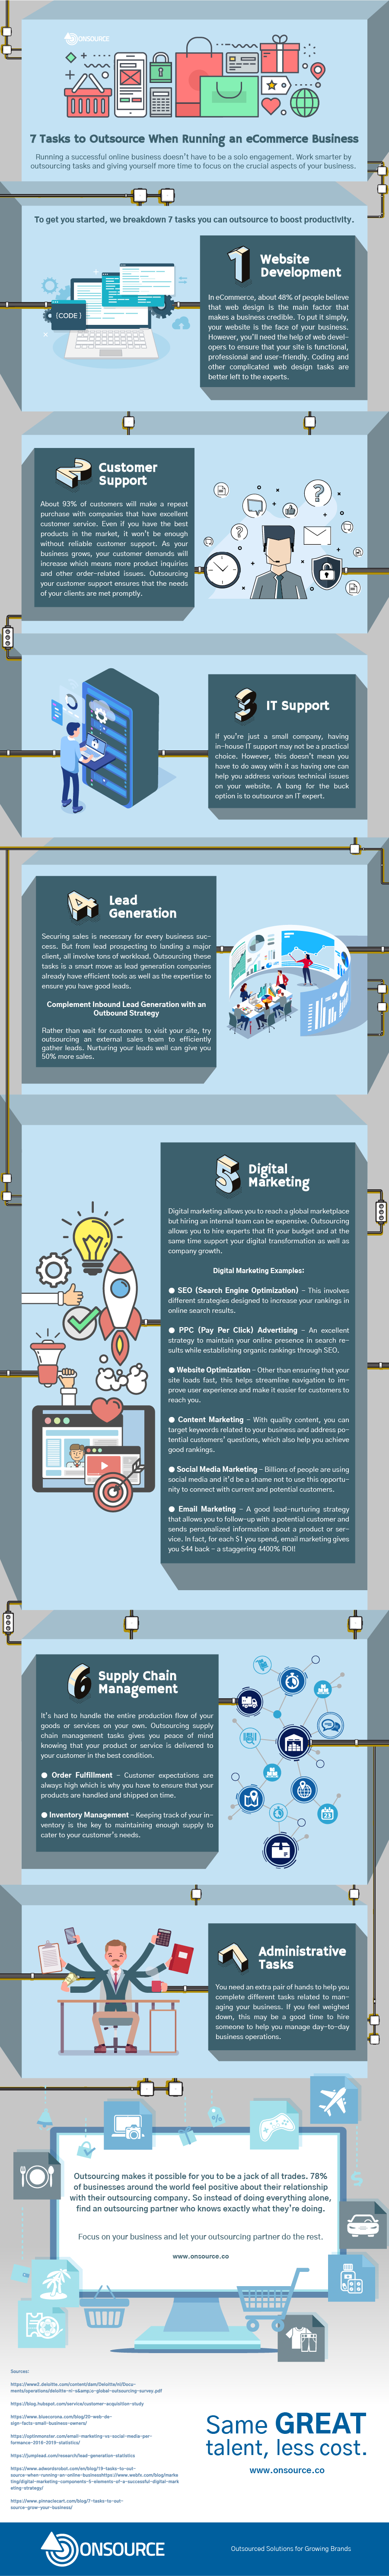 7 Tasks to Outsource When Running an eCommerce Business #infographic